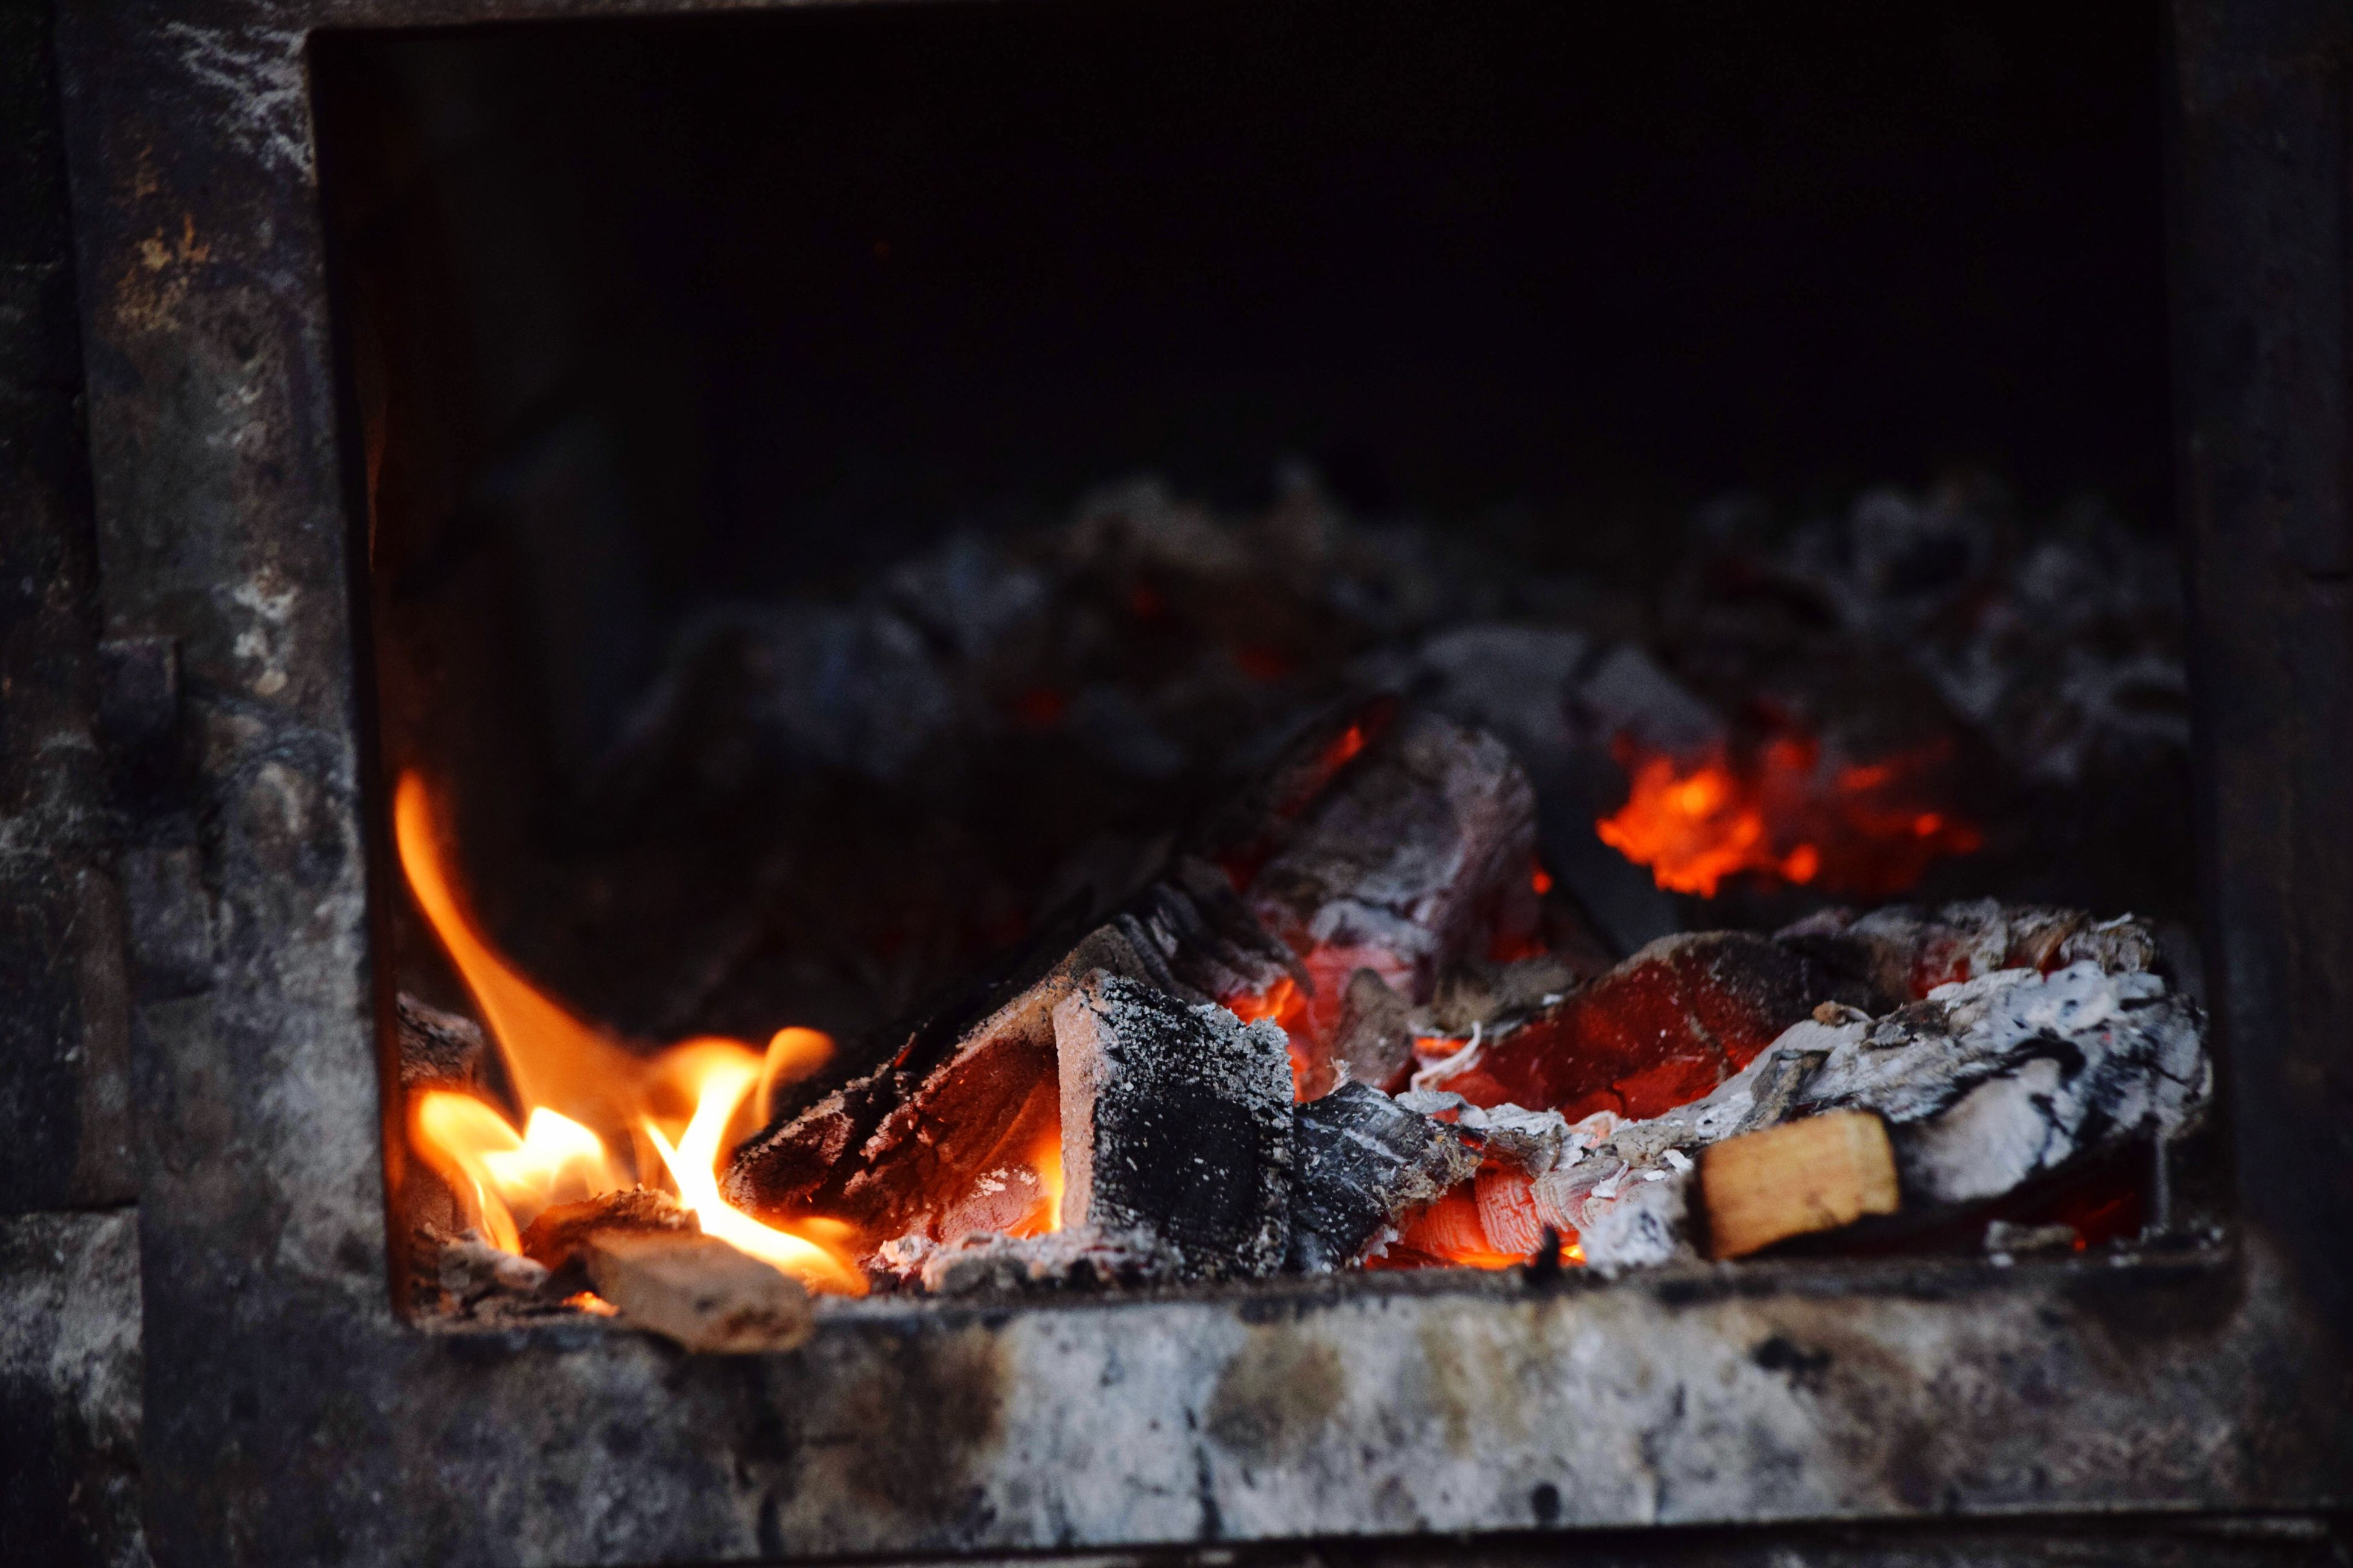 flame, burning, heat - temperature, fire - natural phenomenon, firewood, fire, bonfire, heat, night, glowing, barbecue grill, fireplace, campfire, smoke - physical structure, damaged, metal, orange color, destruction, abandoned, obsolete